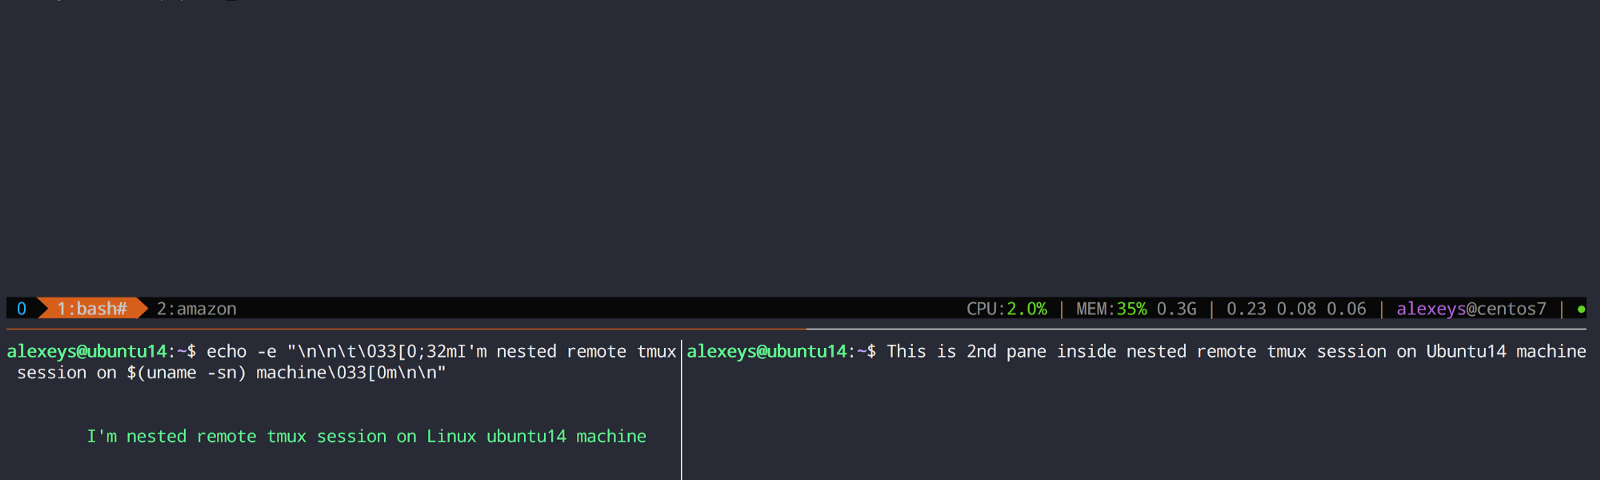 tmux in practice: integration with system clipboard